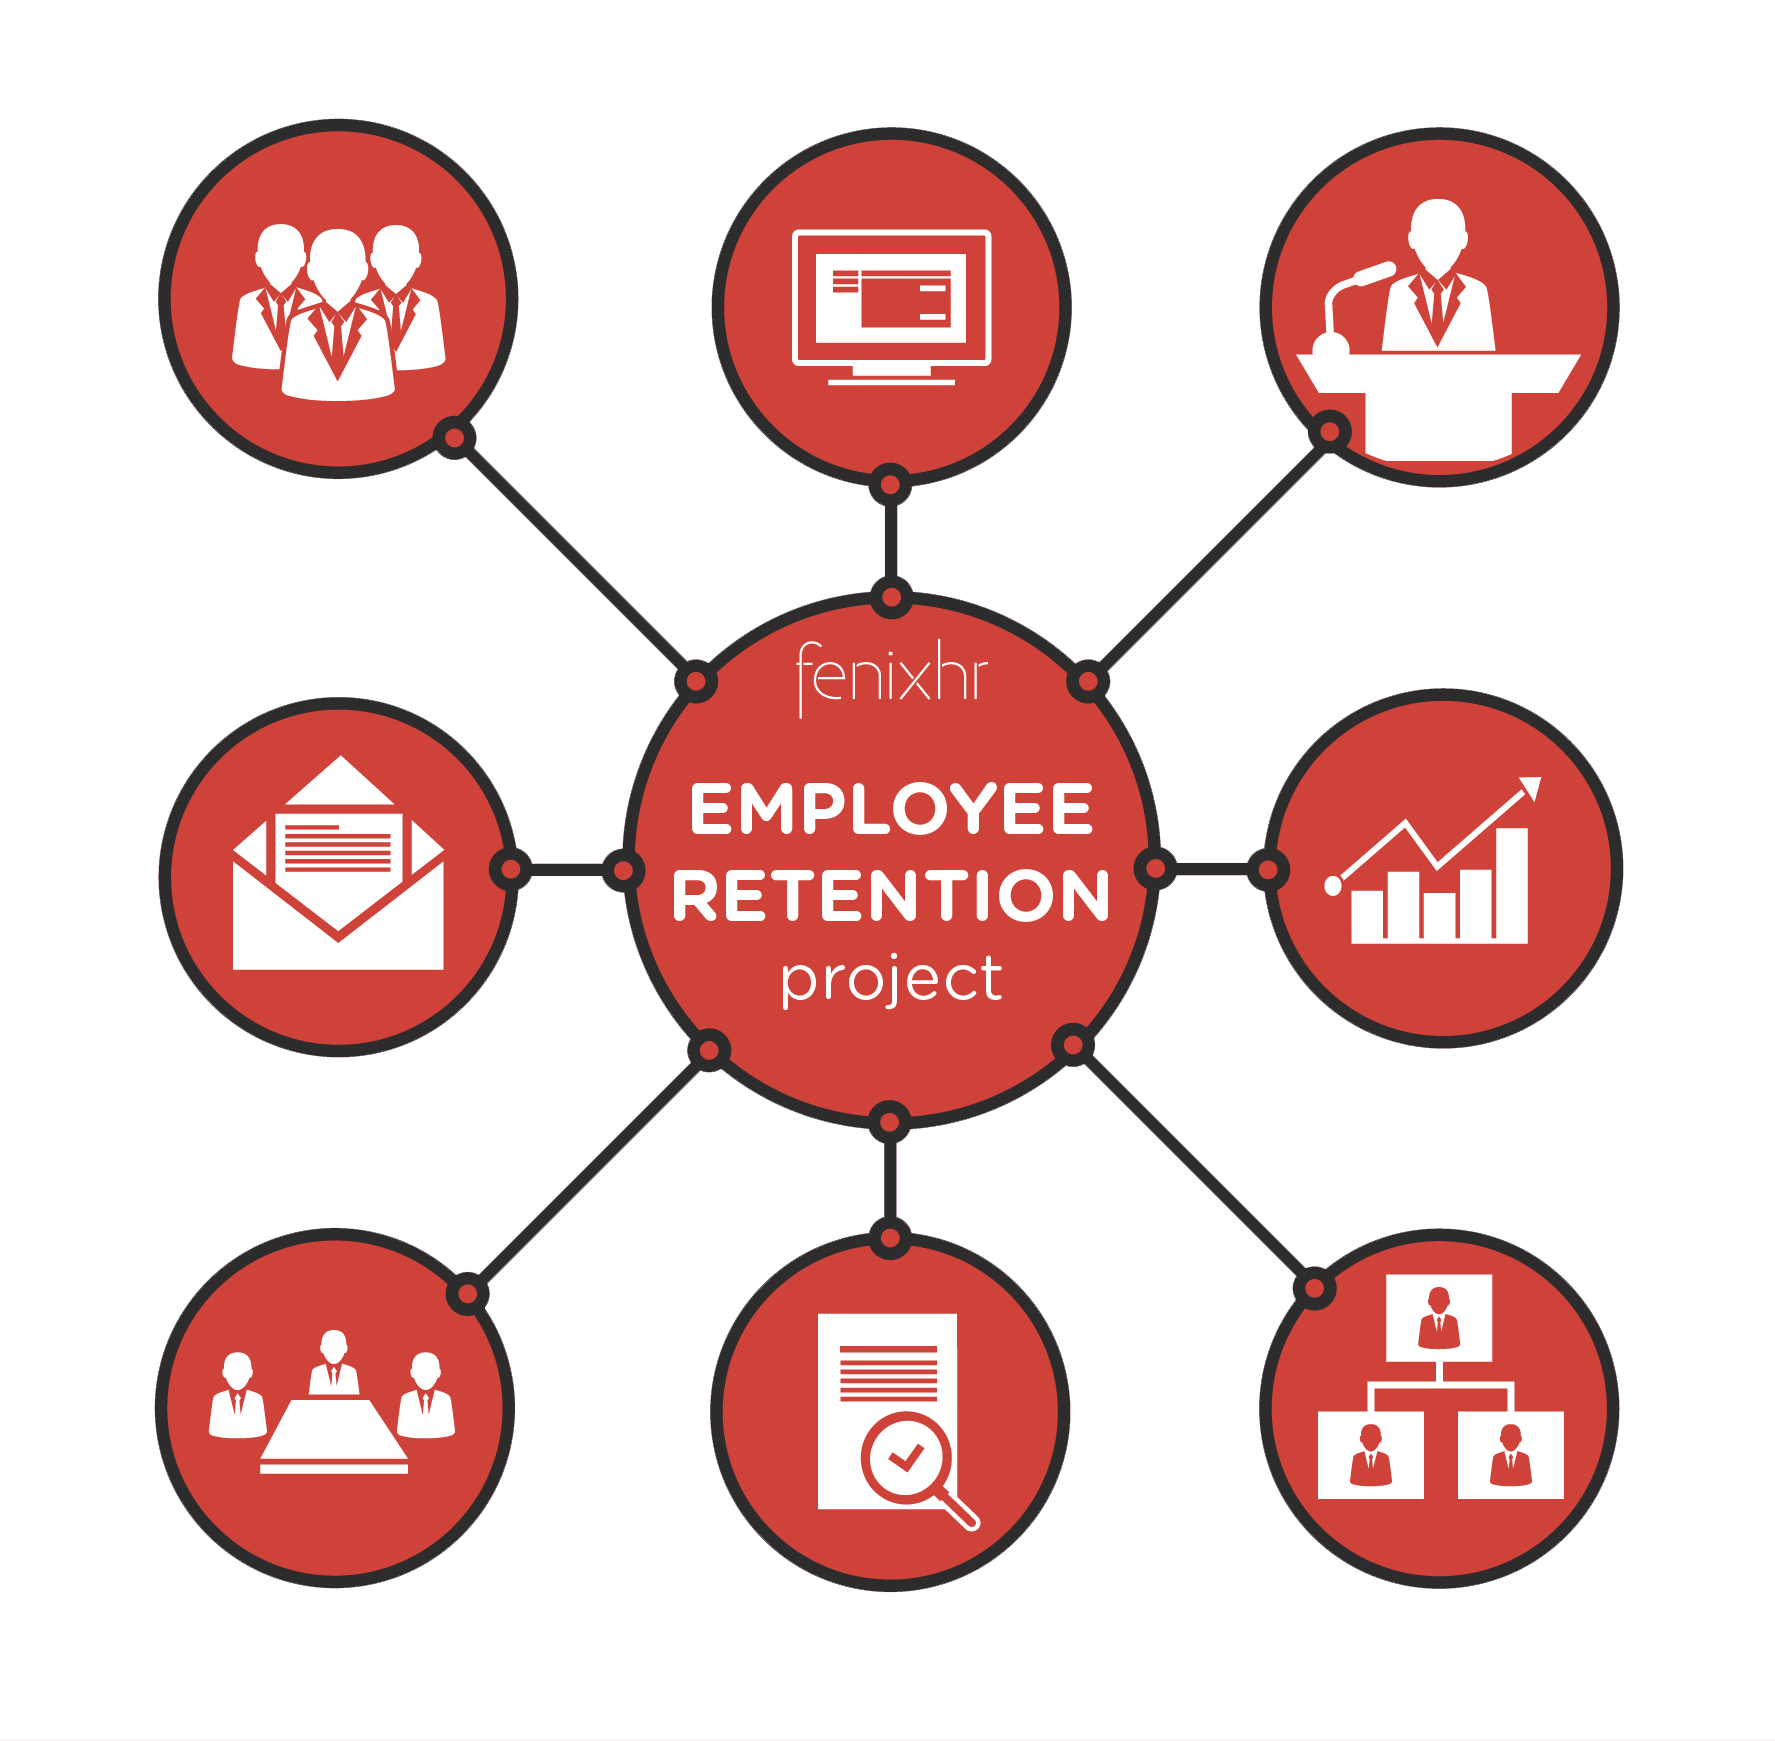 employee turnover and retention in malaysia management essay Managing employee retention and turnover essay  motivation and retention:  a comparative study of strategic hrm practices in malaysian institutions.